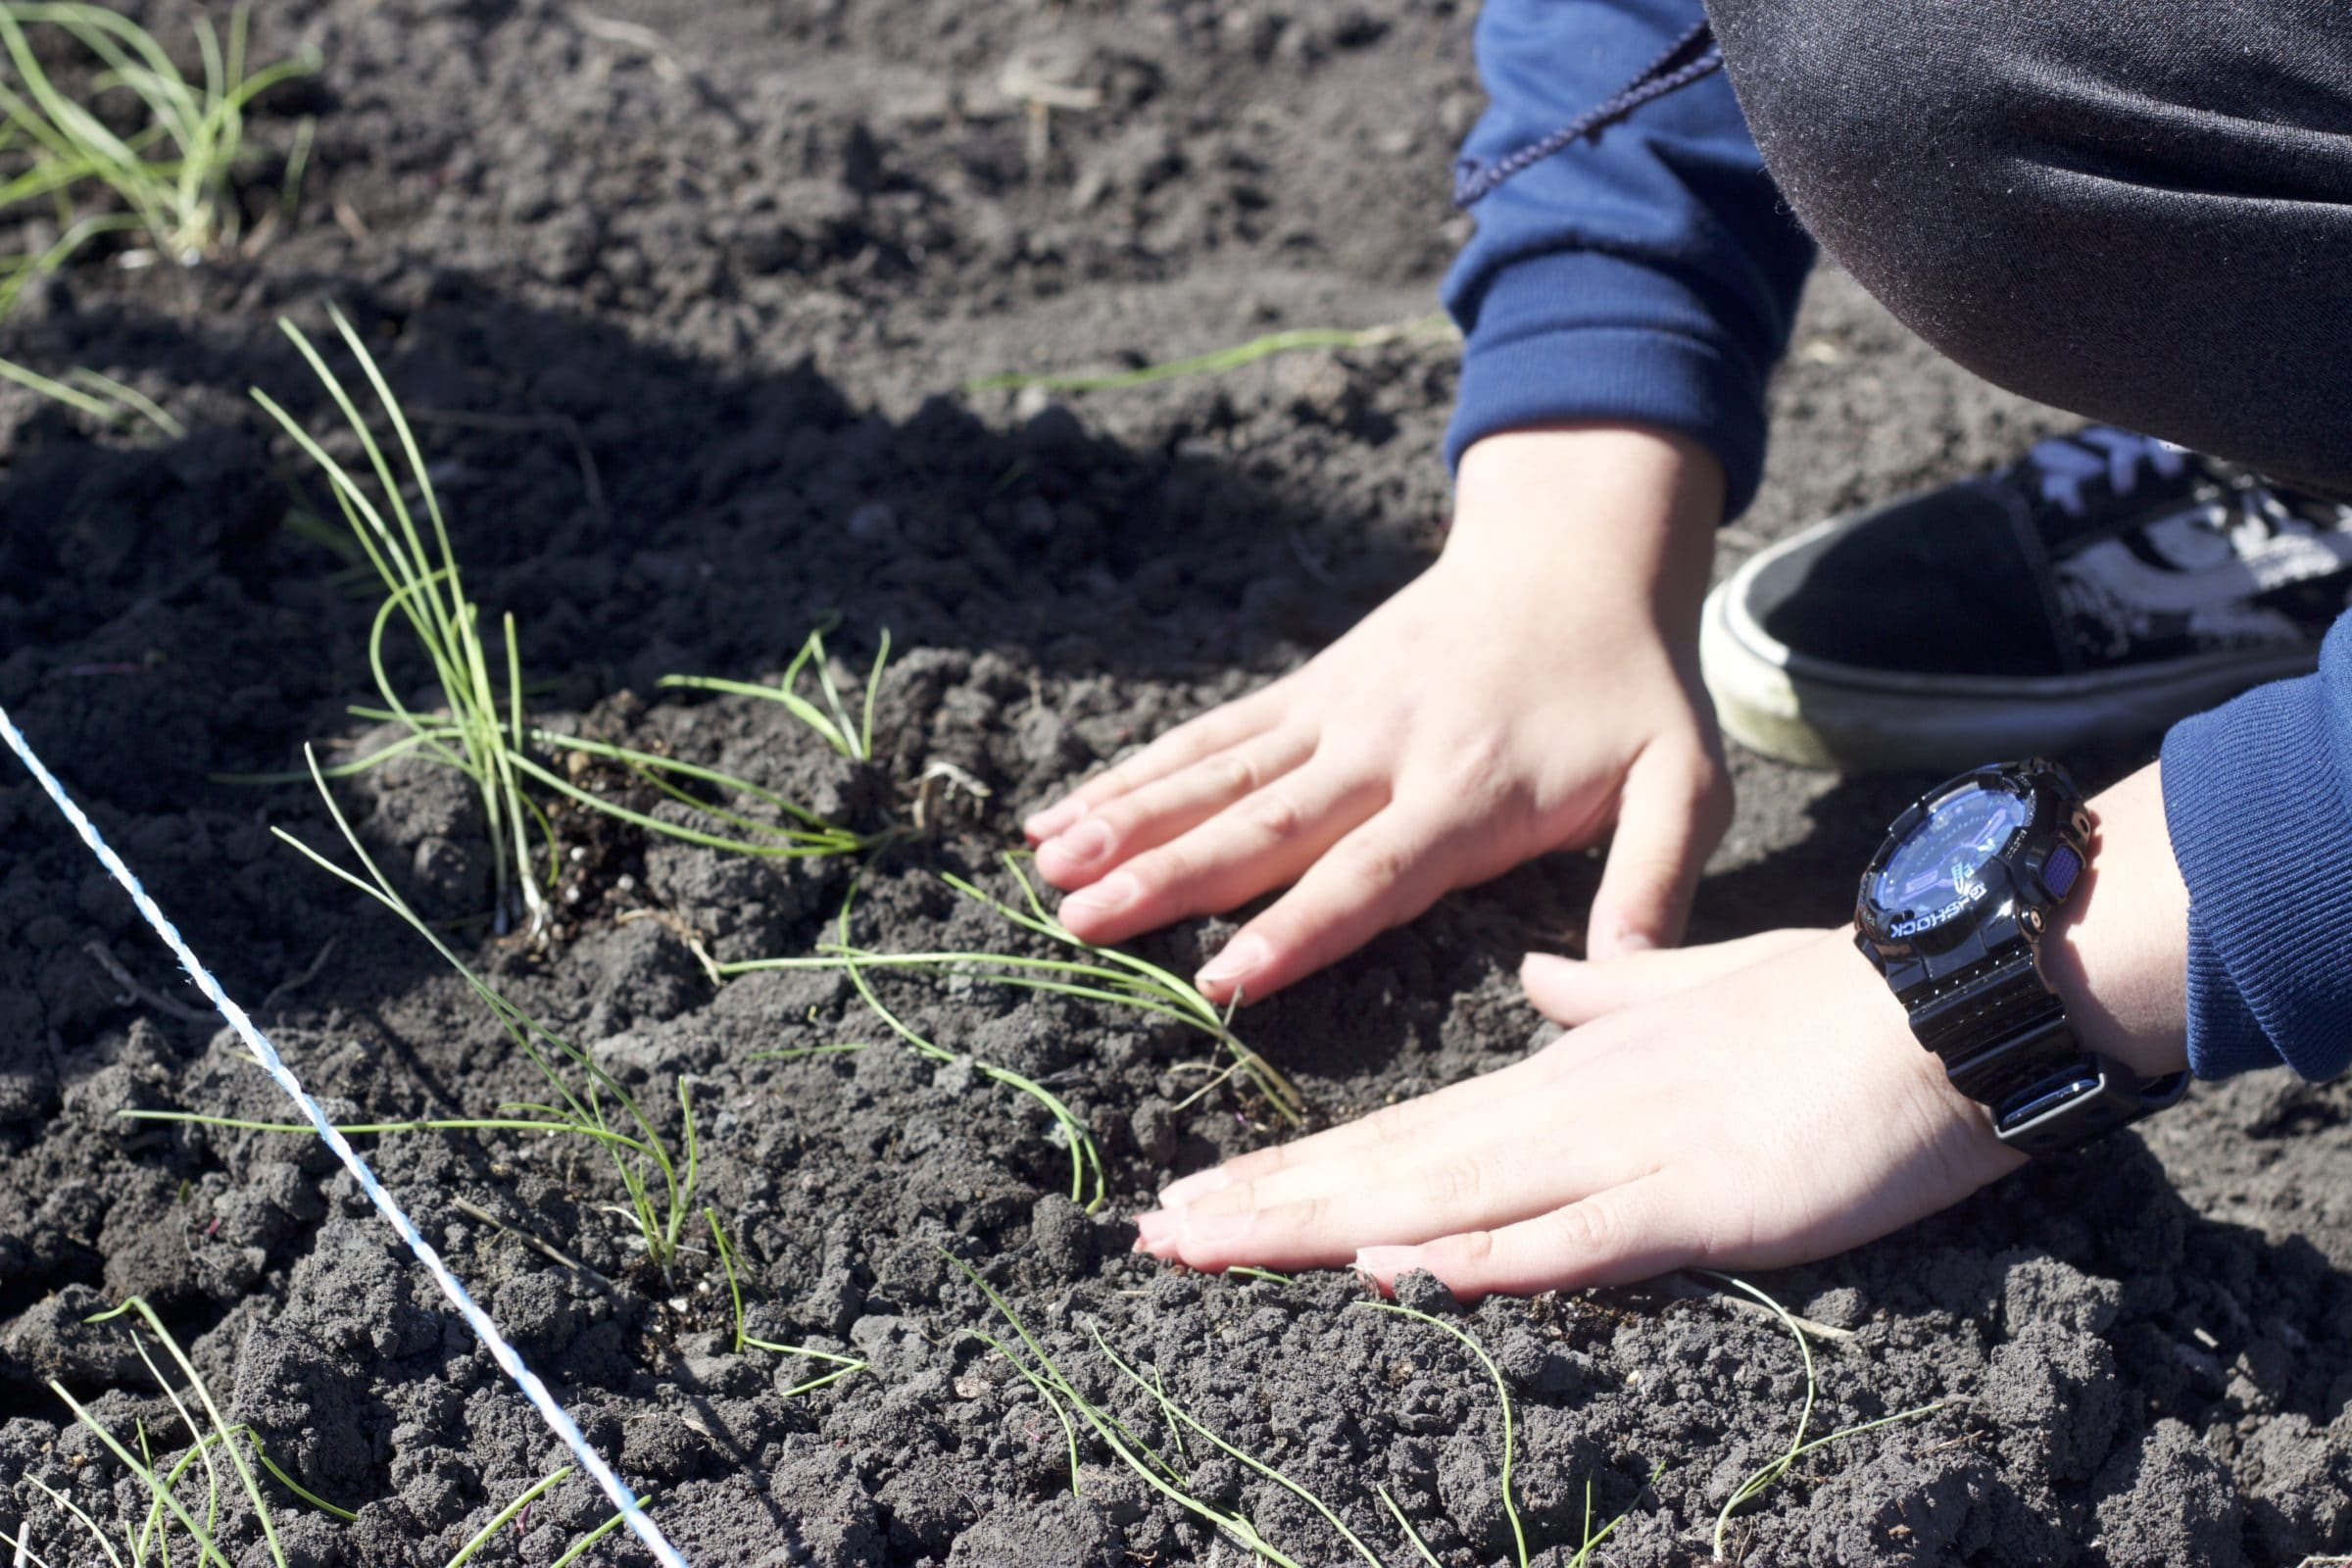 Hands packing soil down around a new plant